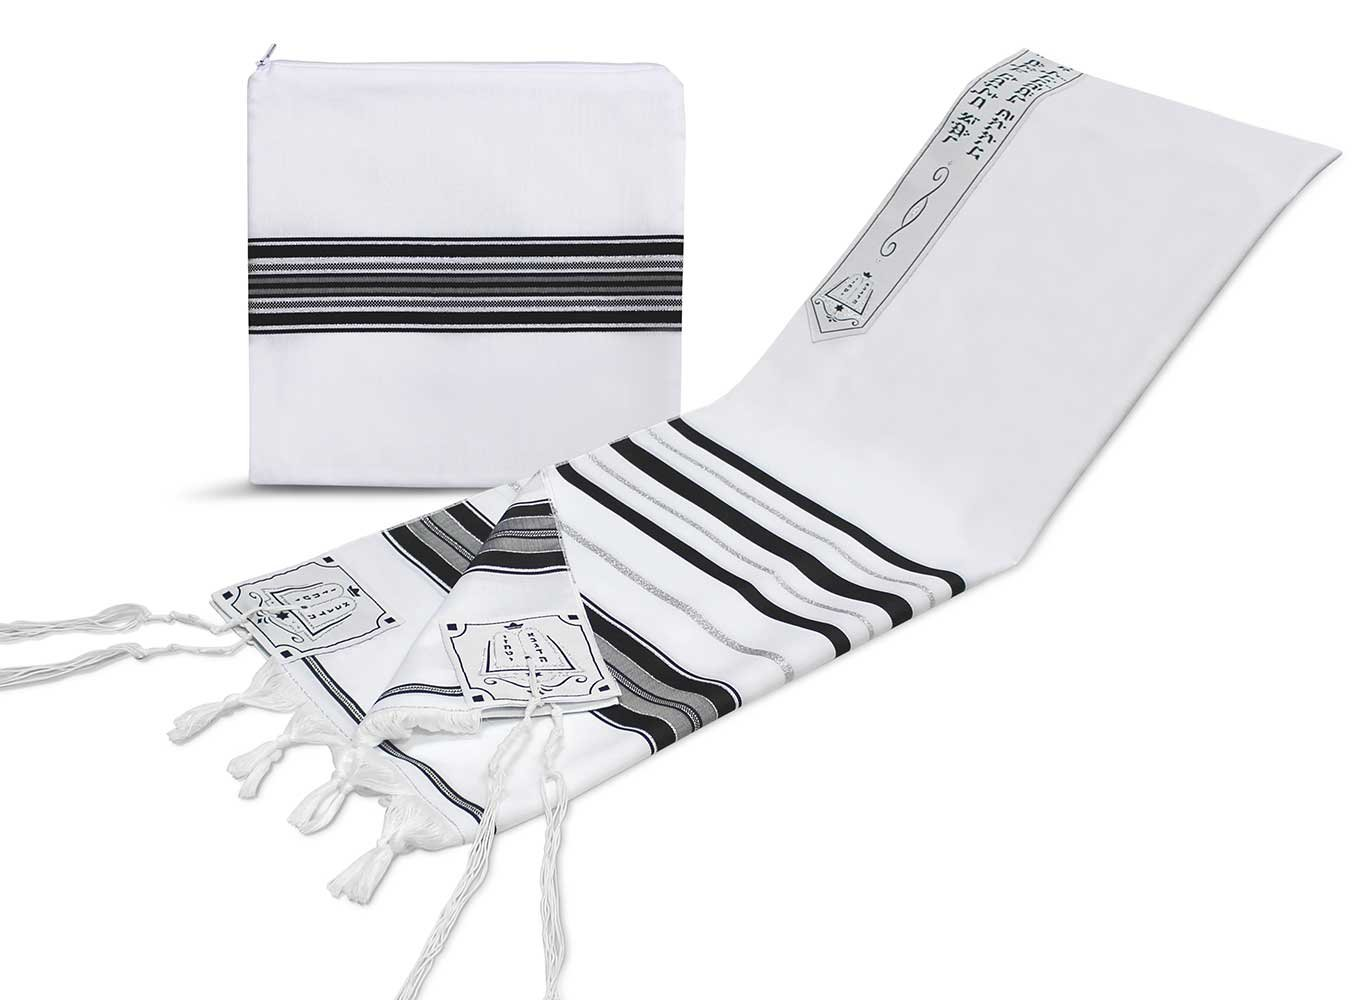 Zion Judaica Tallit Prayer Shawl - Fine Polyester Talis with a Matching Zippered Bag - Certified Kosher - Imported from Israel - Optional Personalization (Black Silver, 24'' x 72'' Personalized) by Zion Judaica Ltd